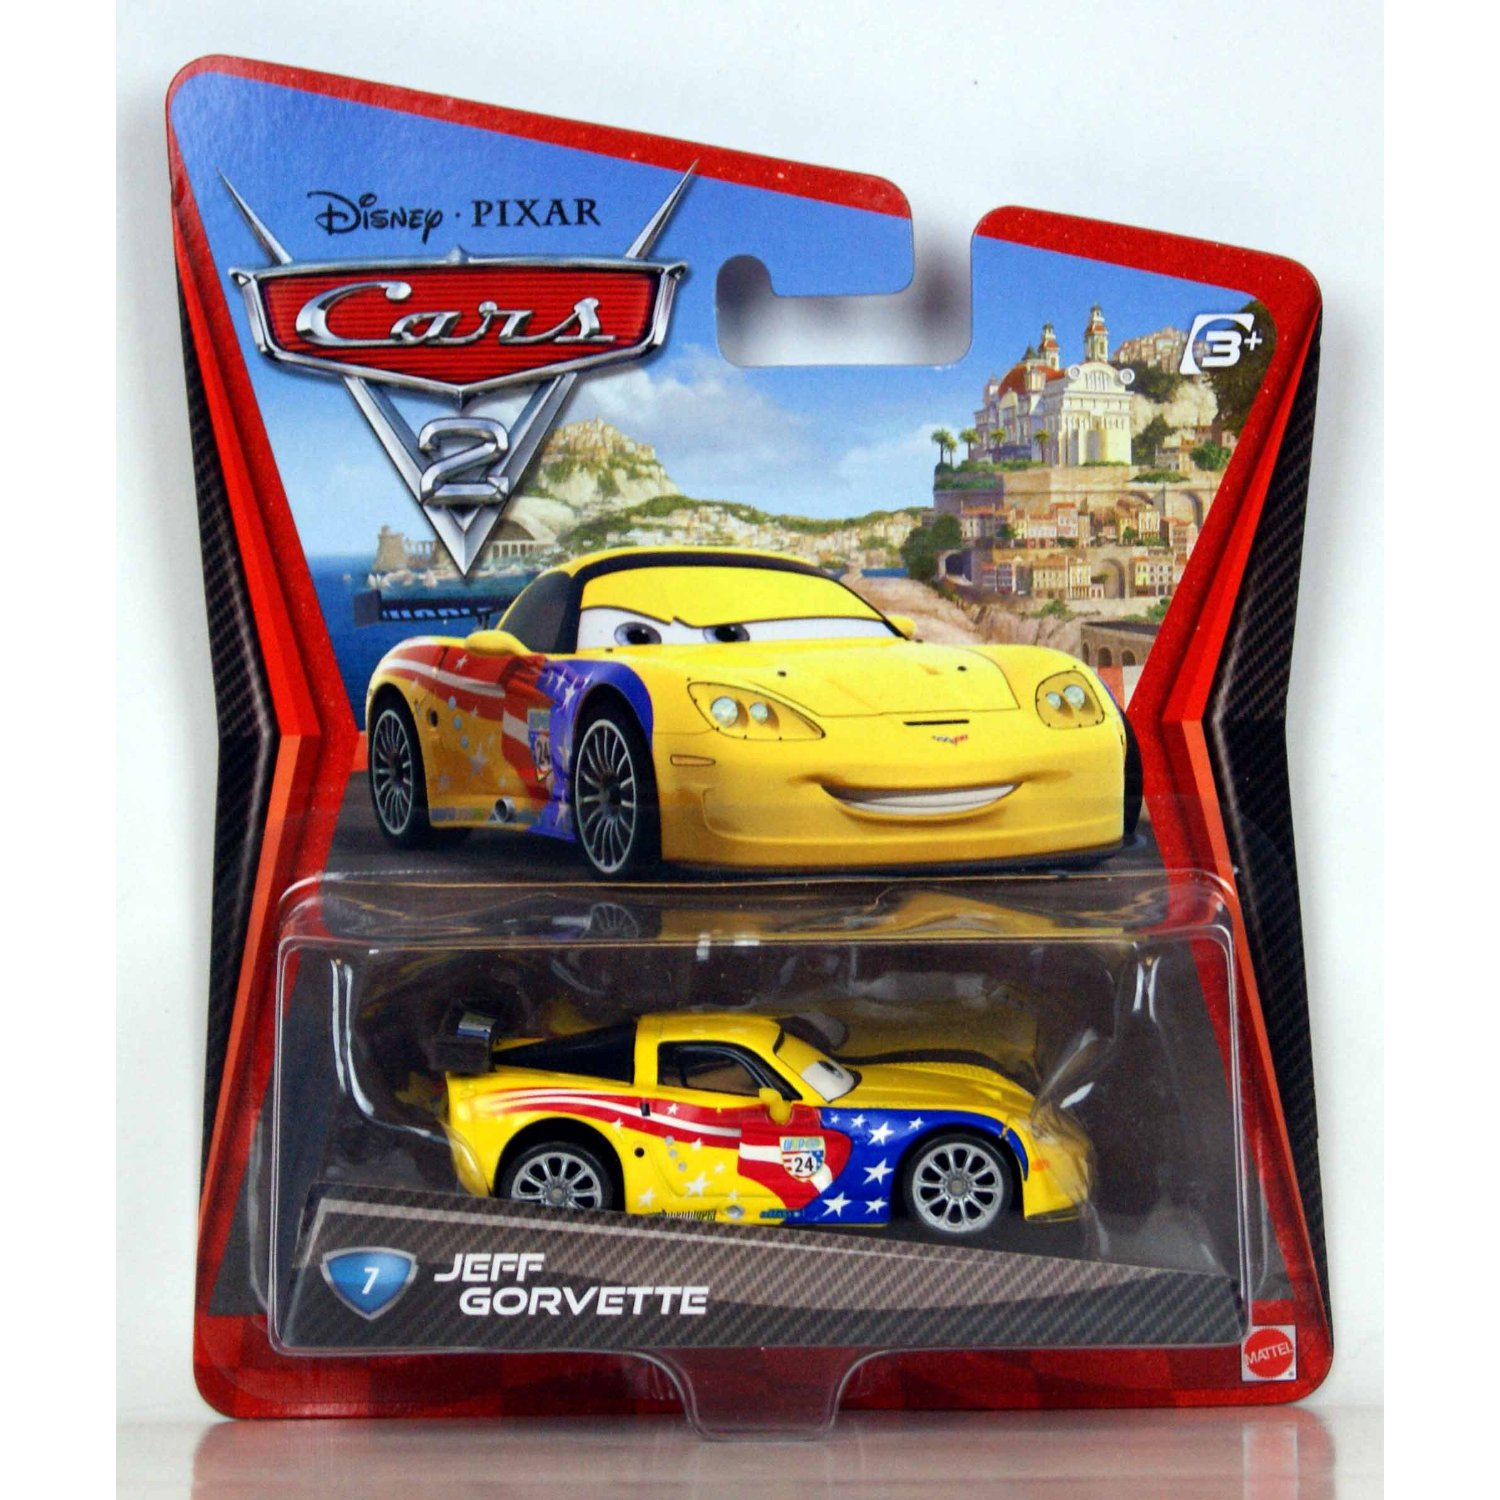 Cars 1 And 2 Toys : Baby in the kitchen s review disney pixar cars